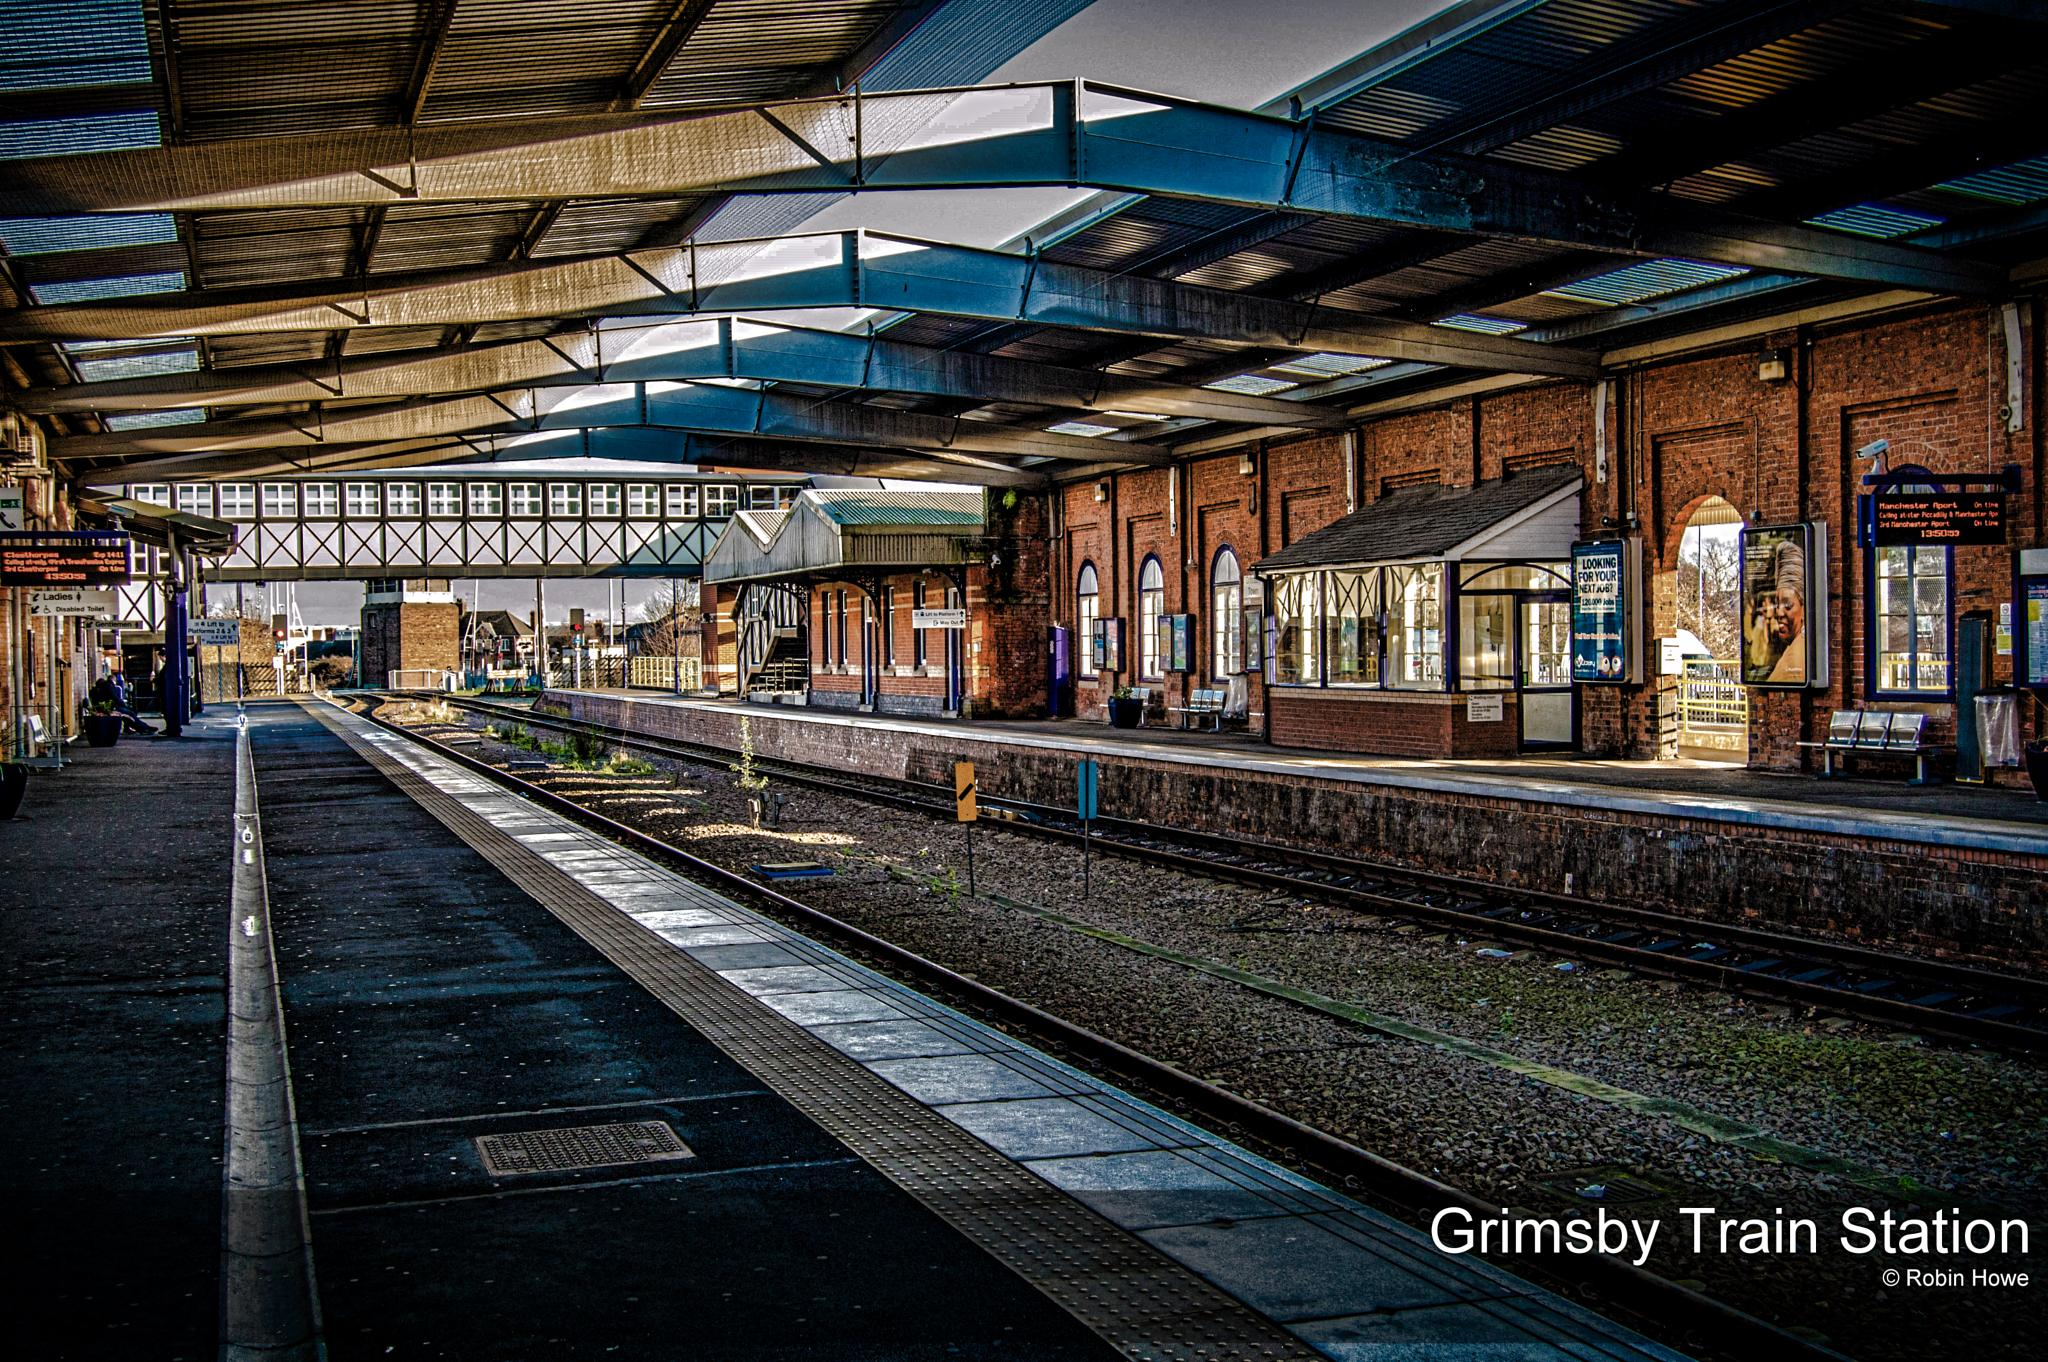 Train station by robin.howe.56